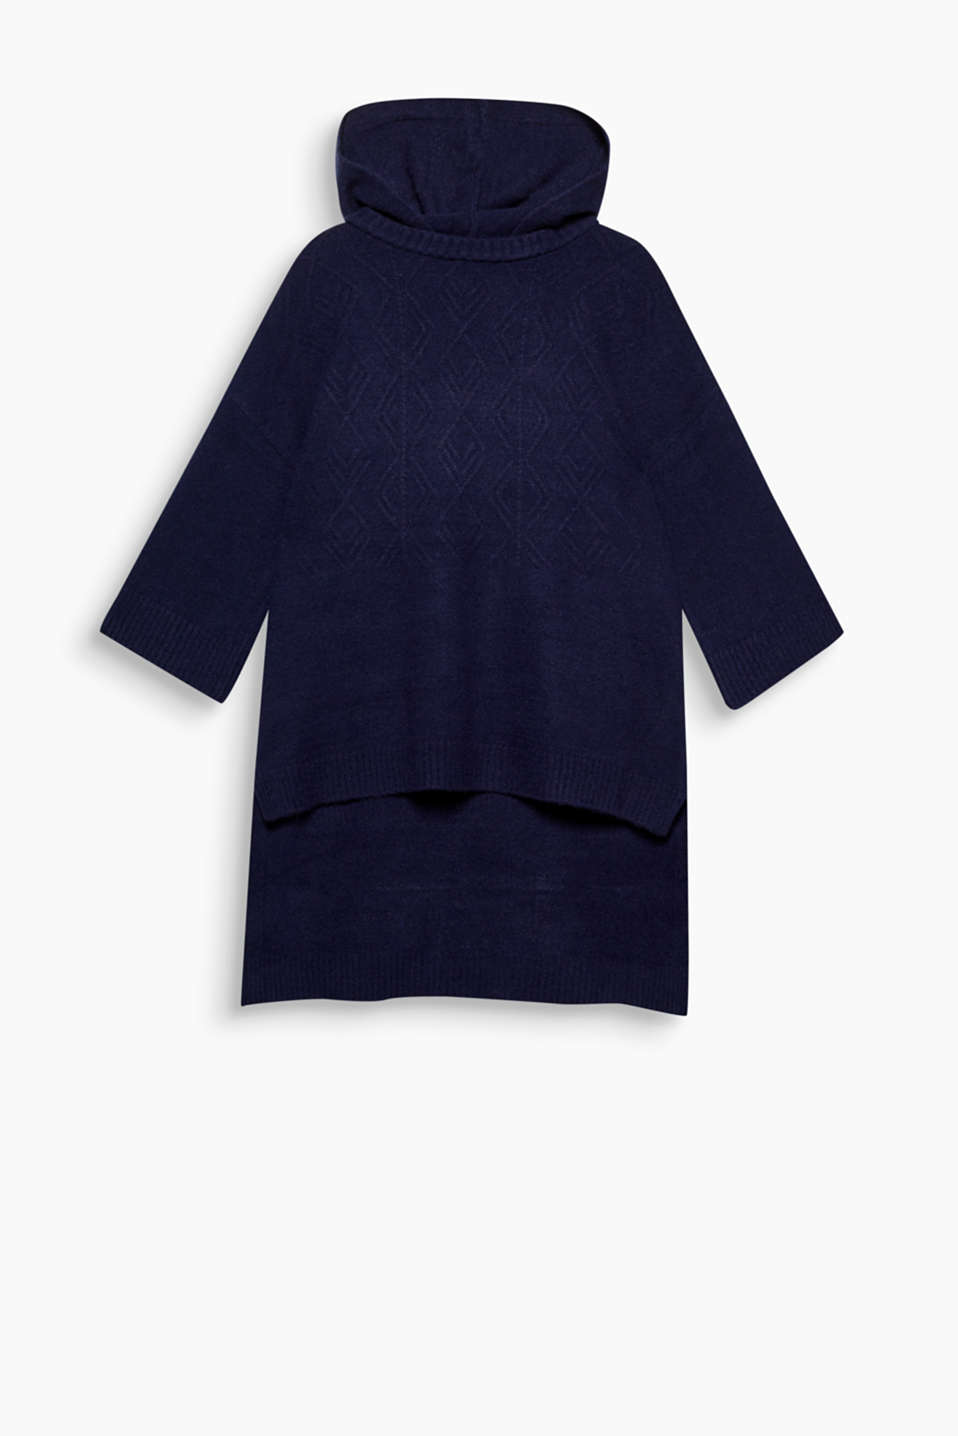 Fashion piece: this casual cape jumper with a hood, cable pattern and high-low hem will make you look forward to winter!